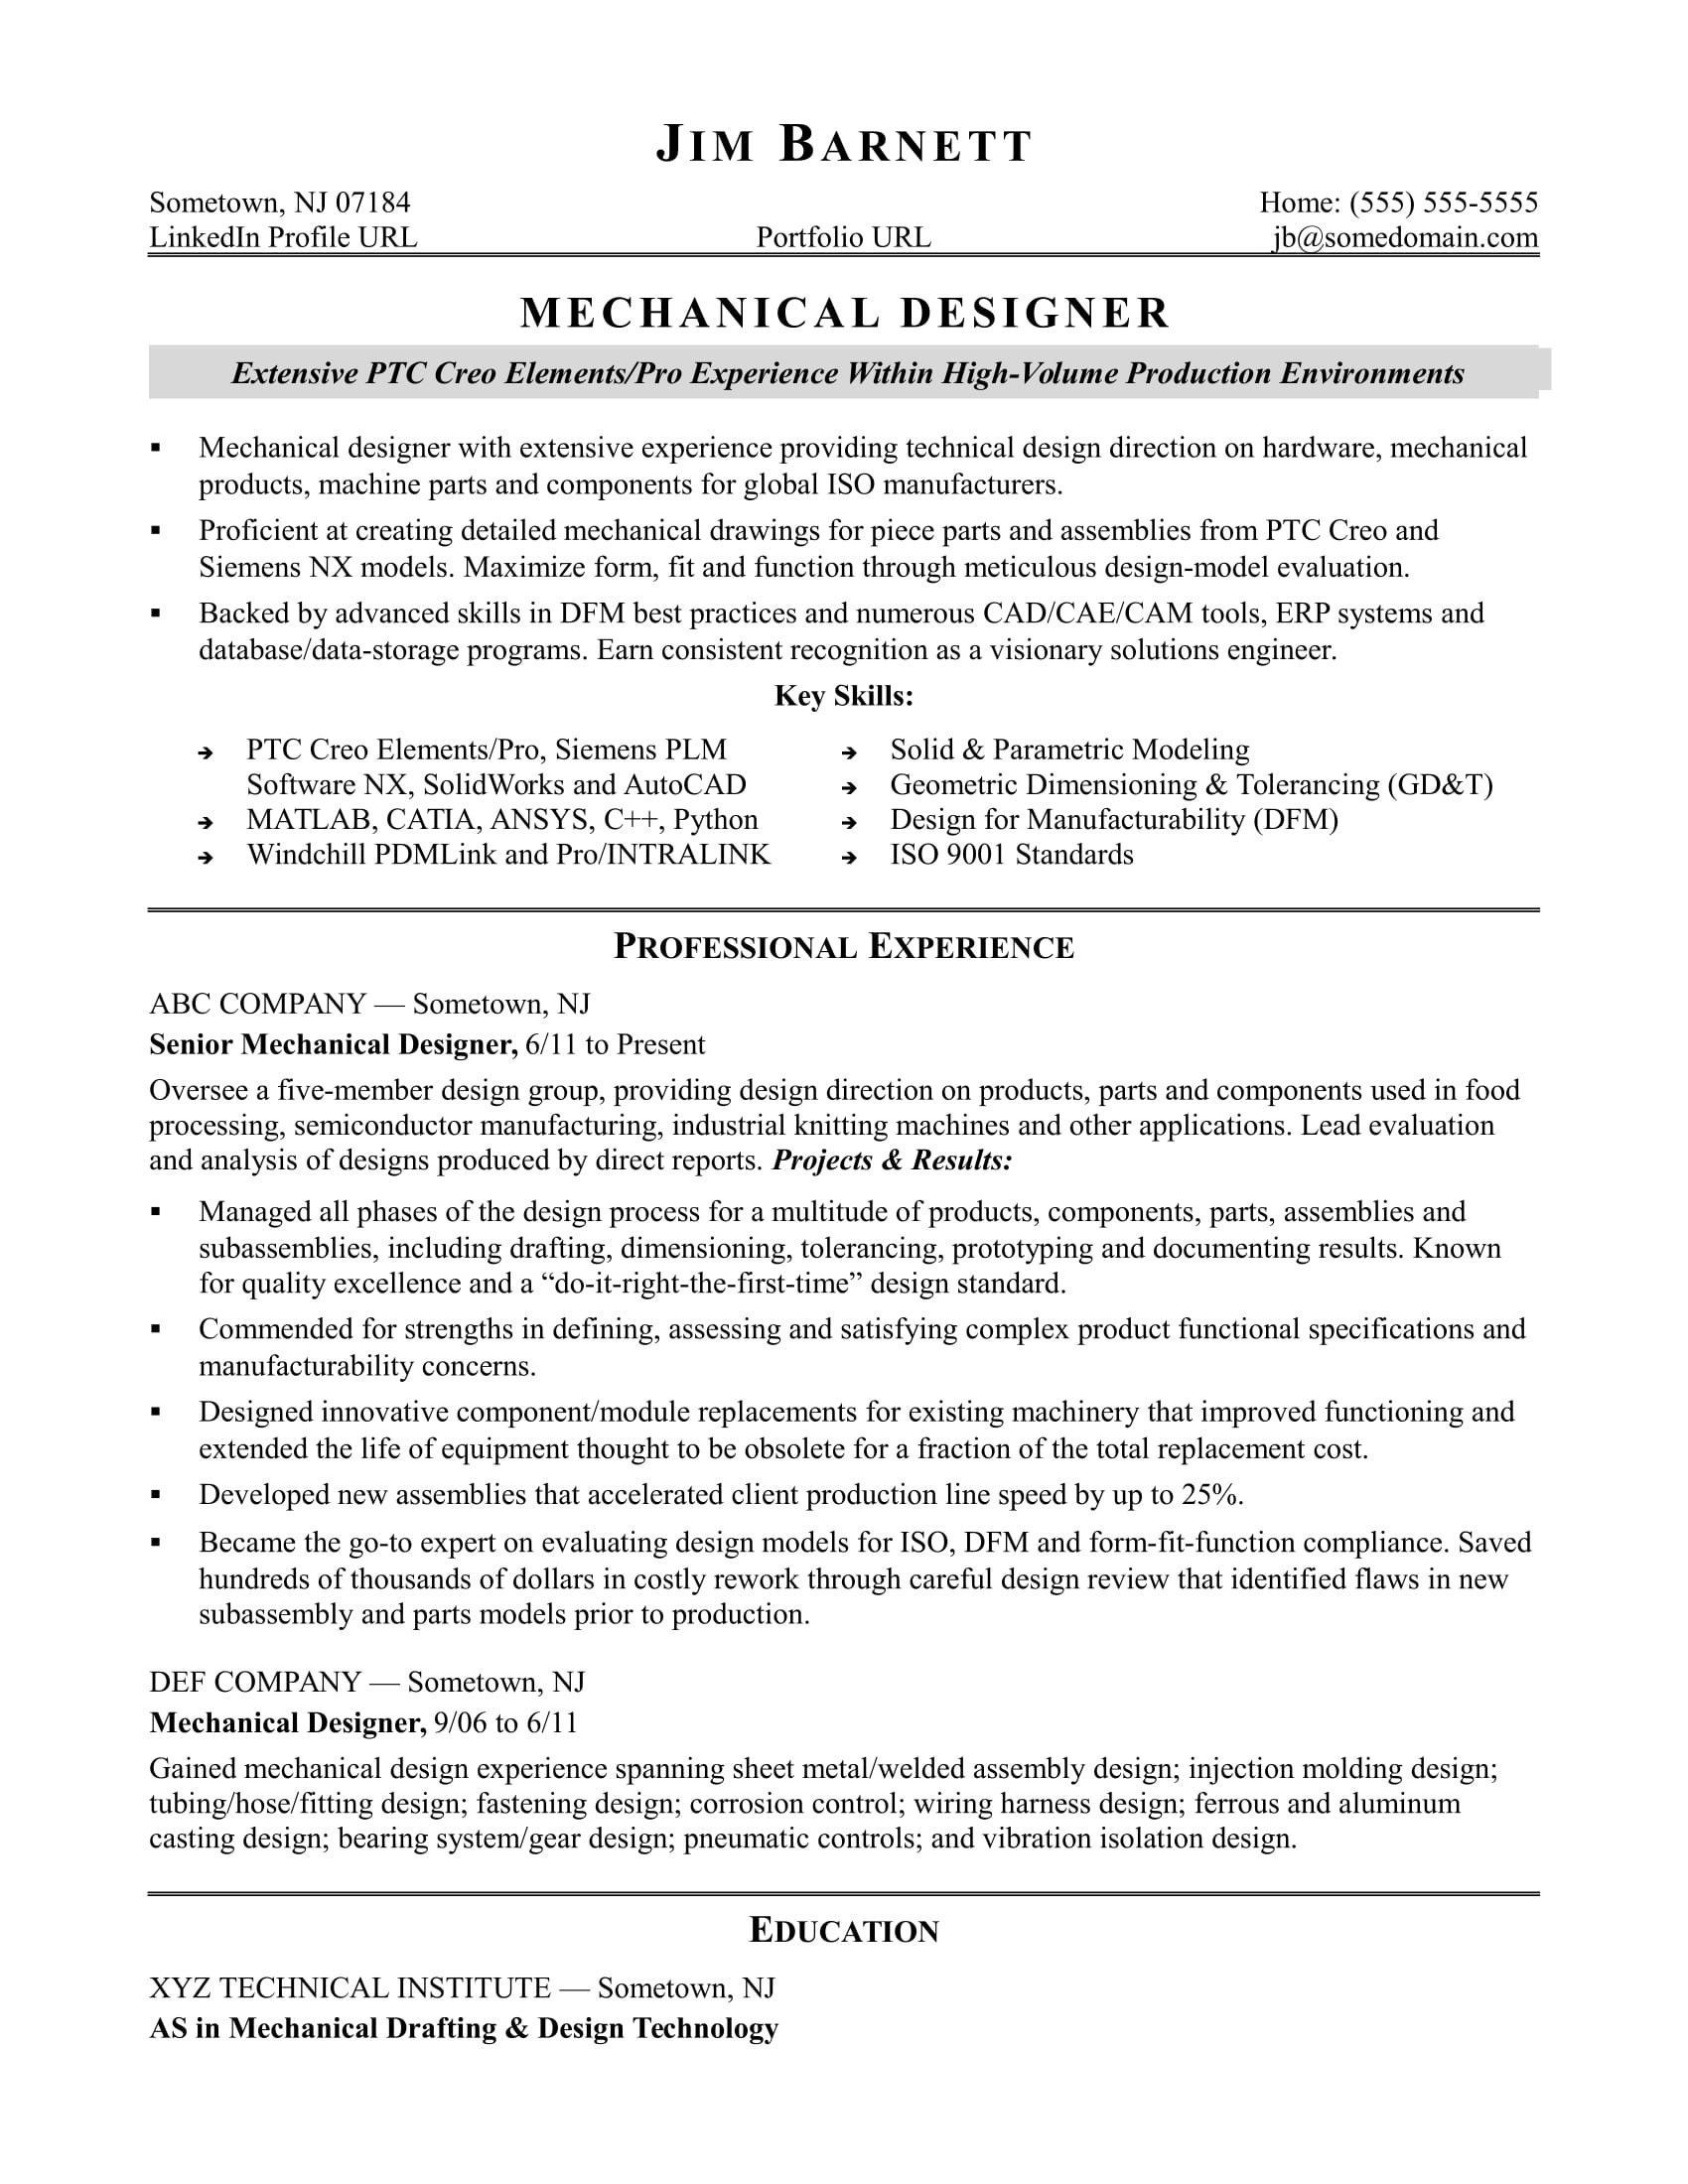 Mechanical Engineer Resume Sample Stunning Sample Resume For An Experienced Mechanical Designer Of Mechanical Engineer Resume Resume Examples Resume Templates